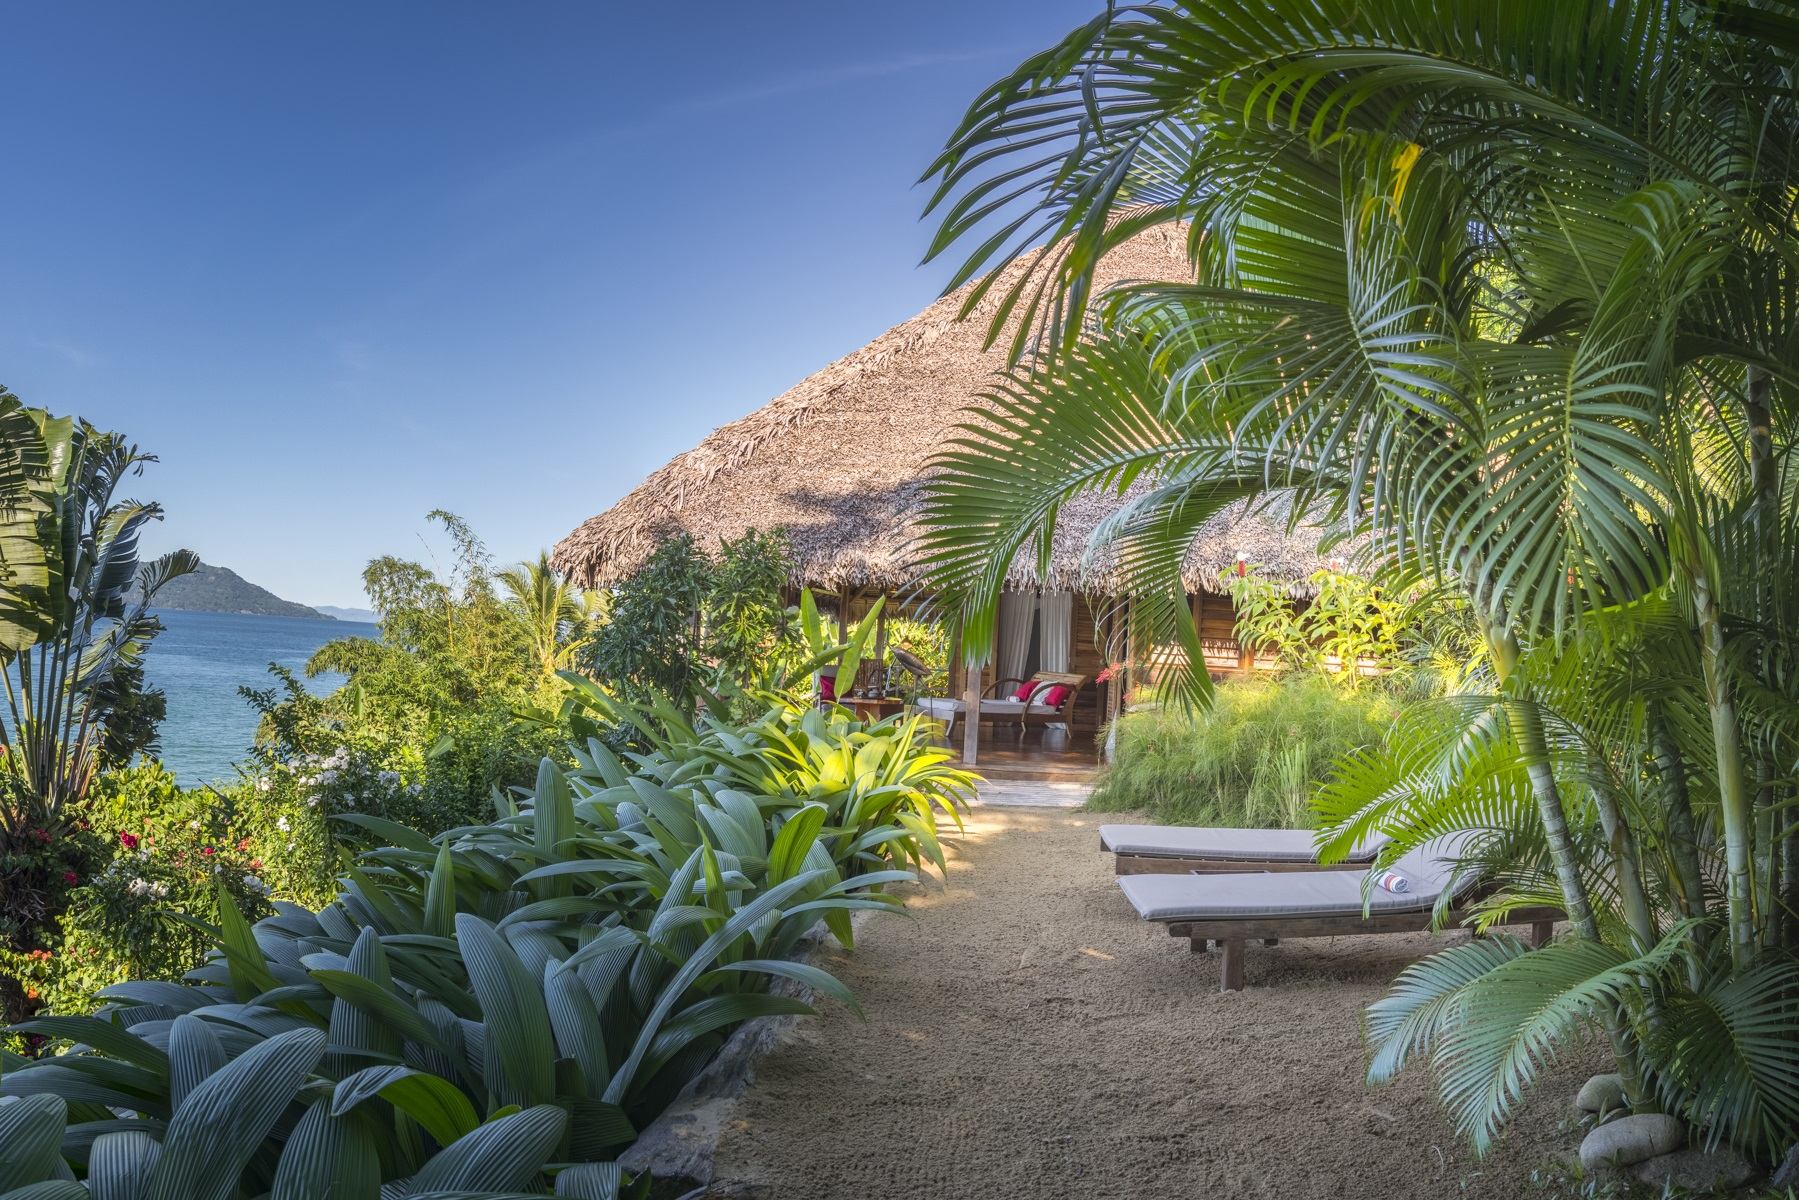 Tsara-komba-lodge-nosy-be-madagascar-wadi-destination-chaise-longue-terrace.jpg